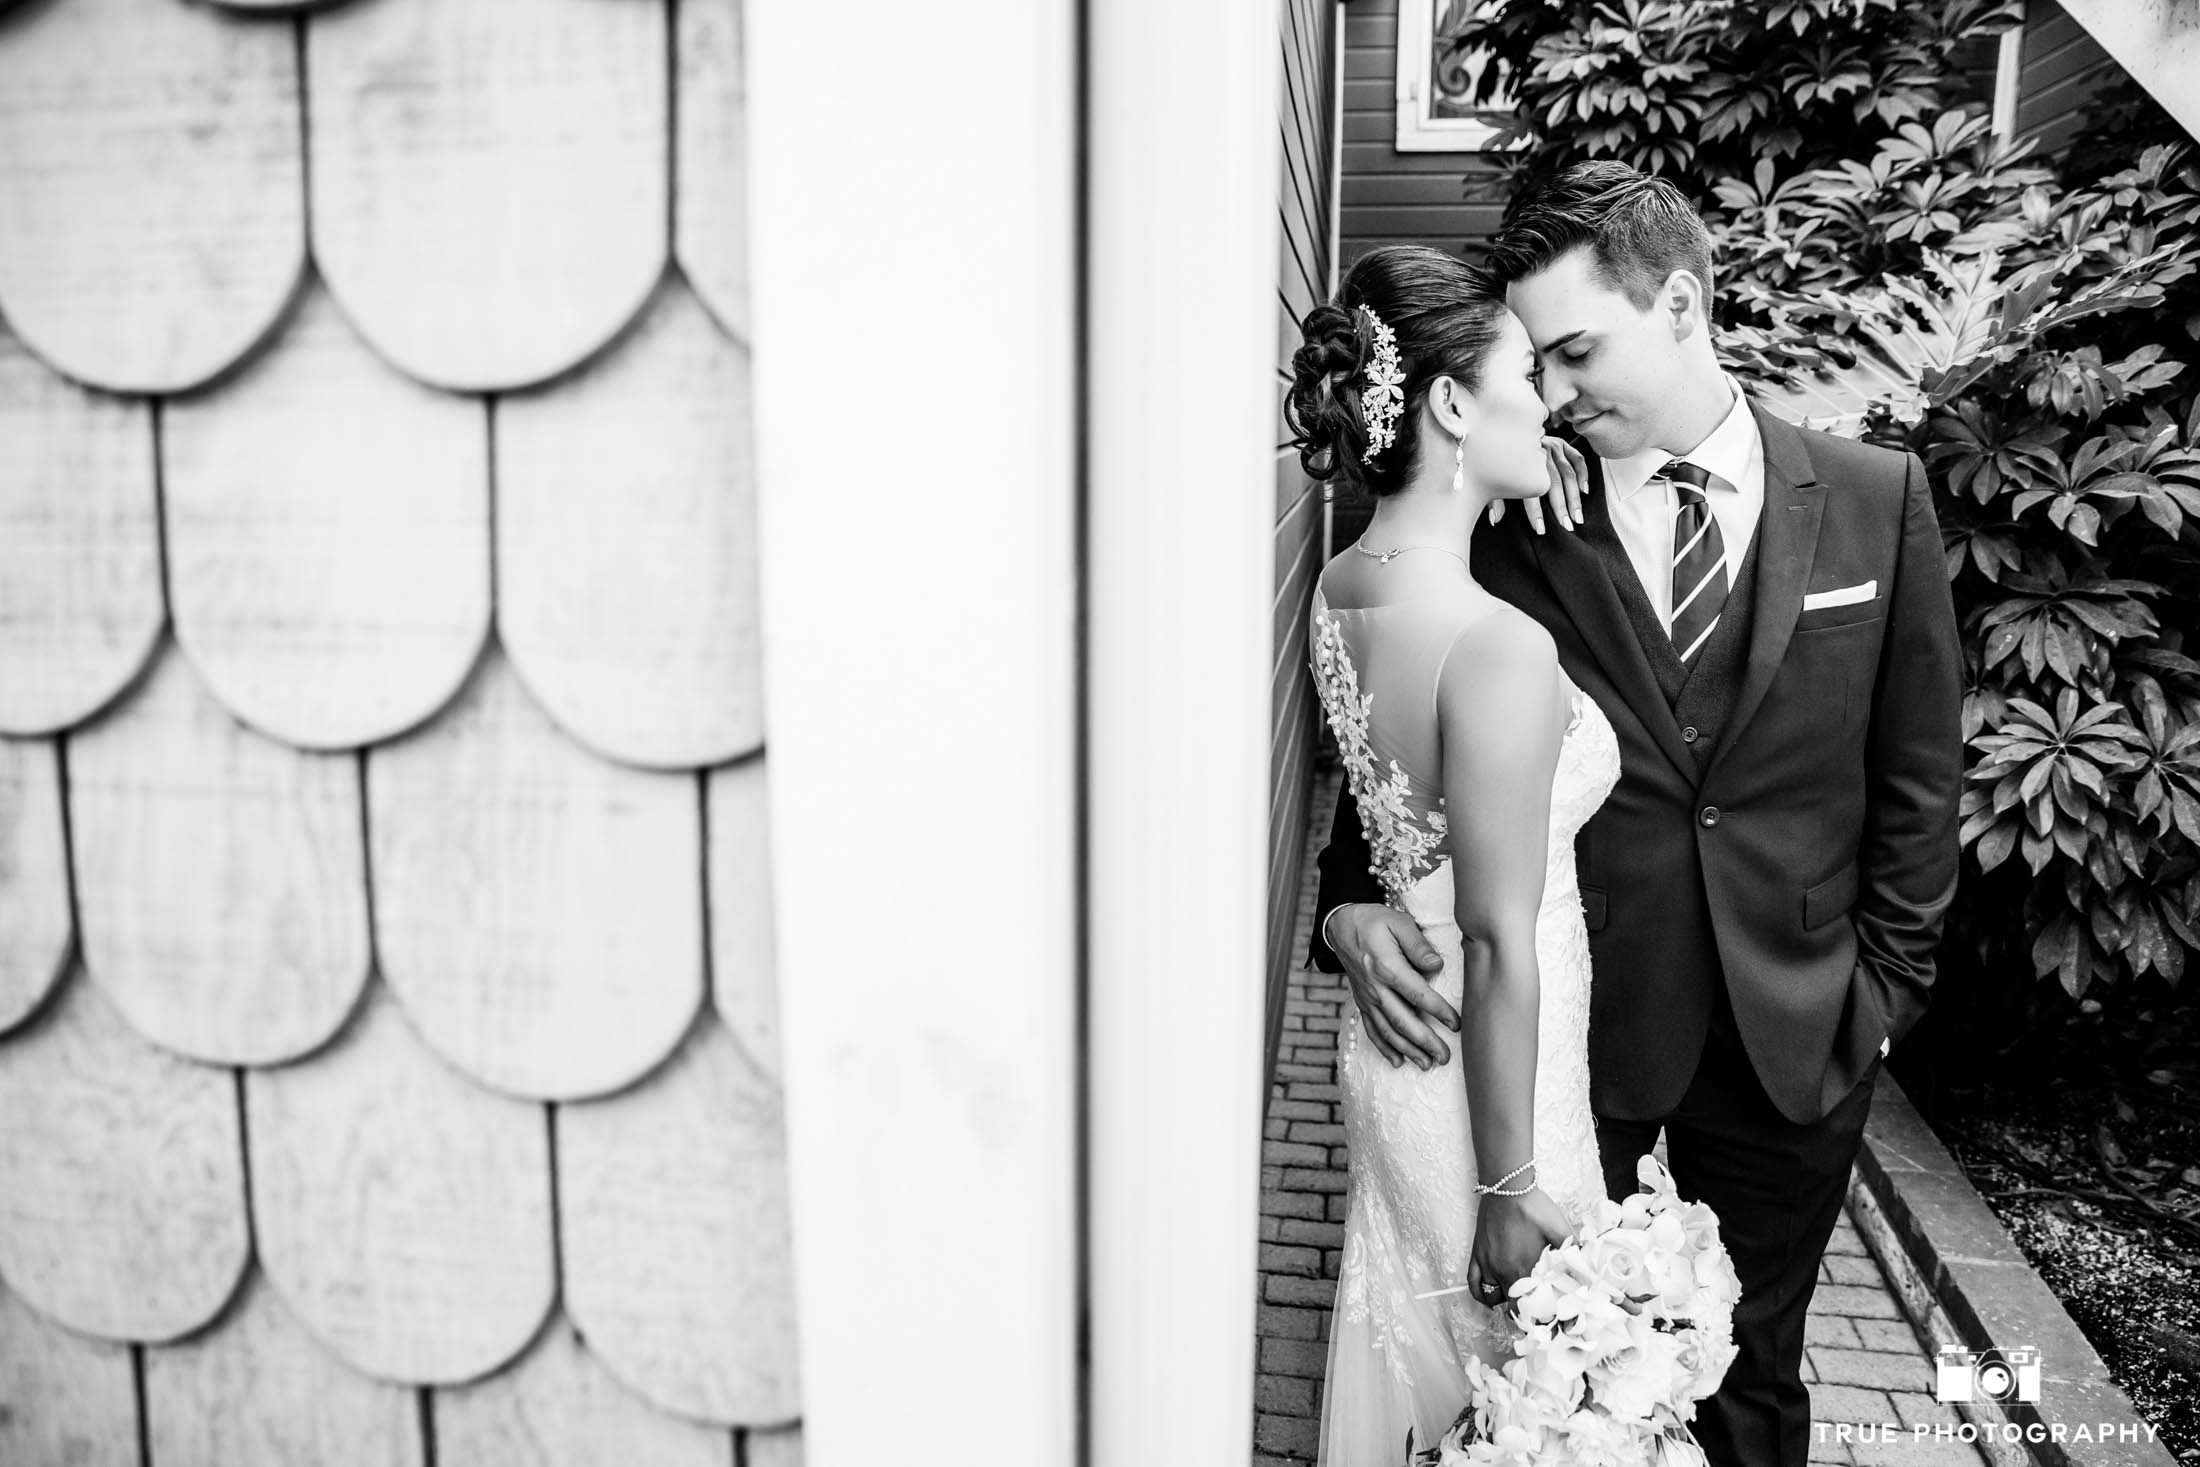 Bride and groom sharing a tender moment